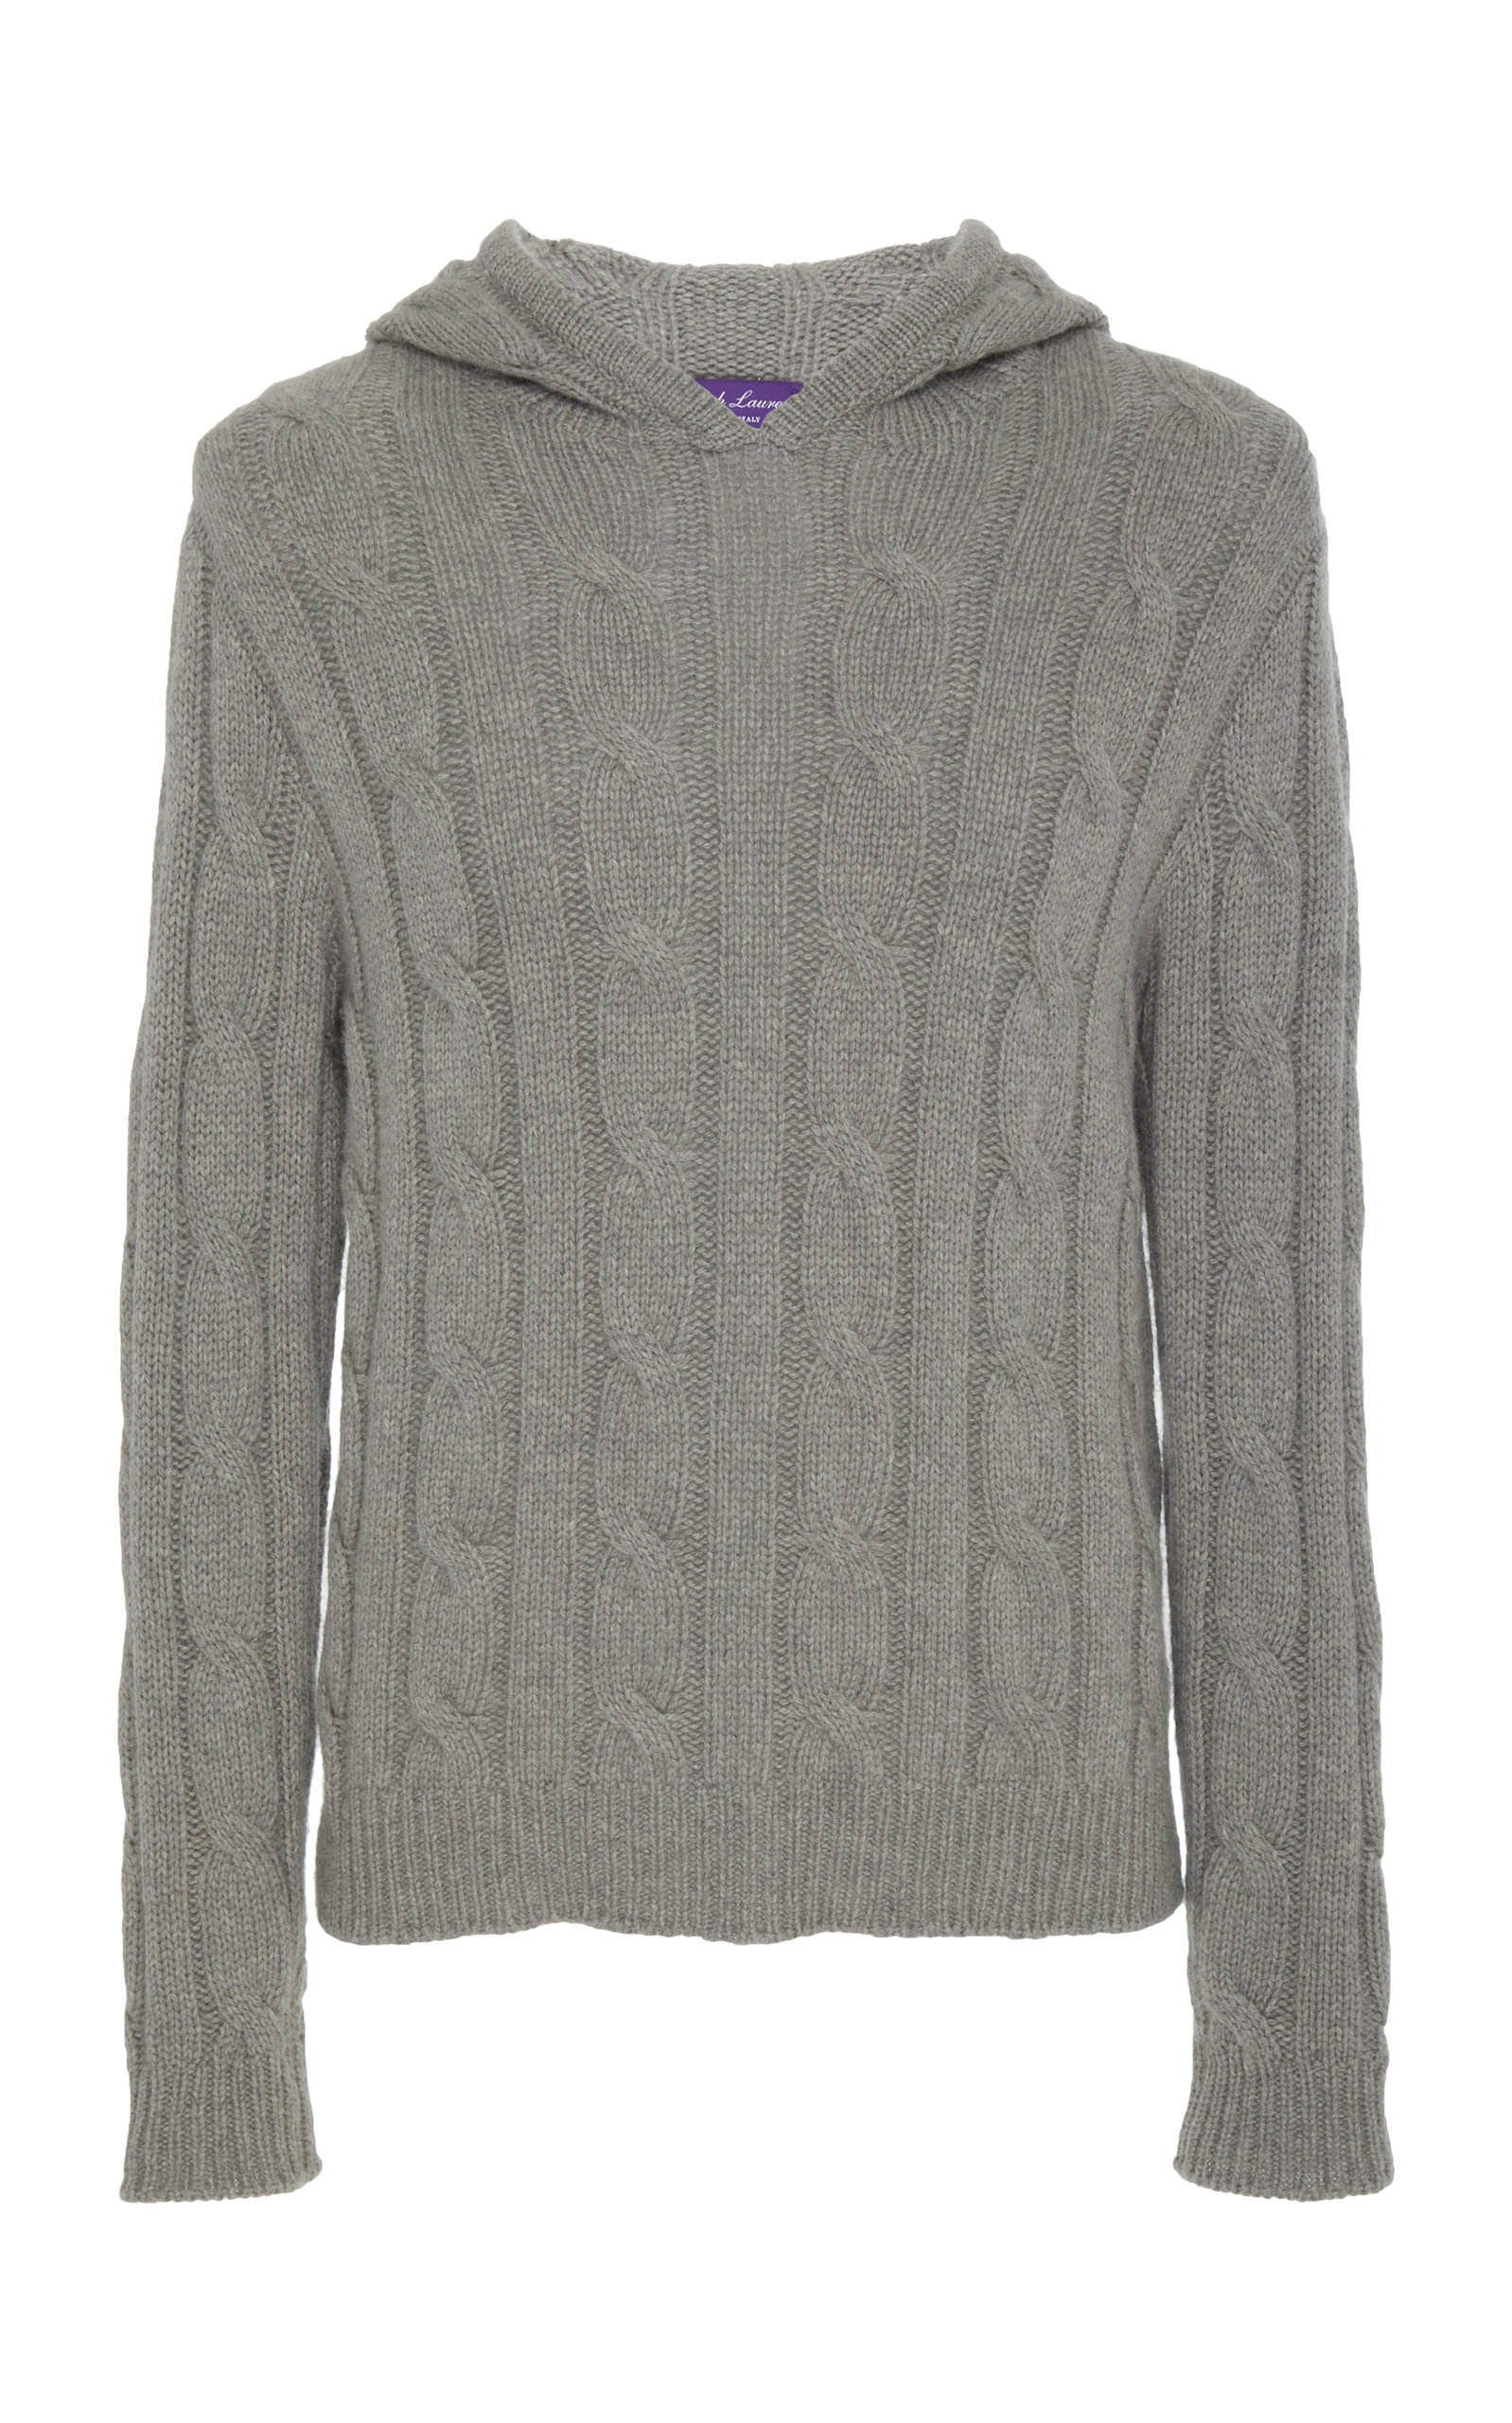 9eb9f57fd Ralph LaurenCable Knit Cashmere Hoodie. CLOSE. Loading